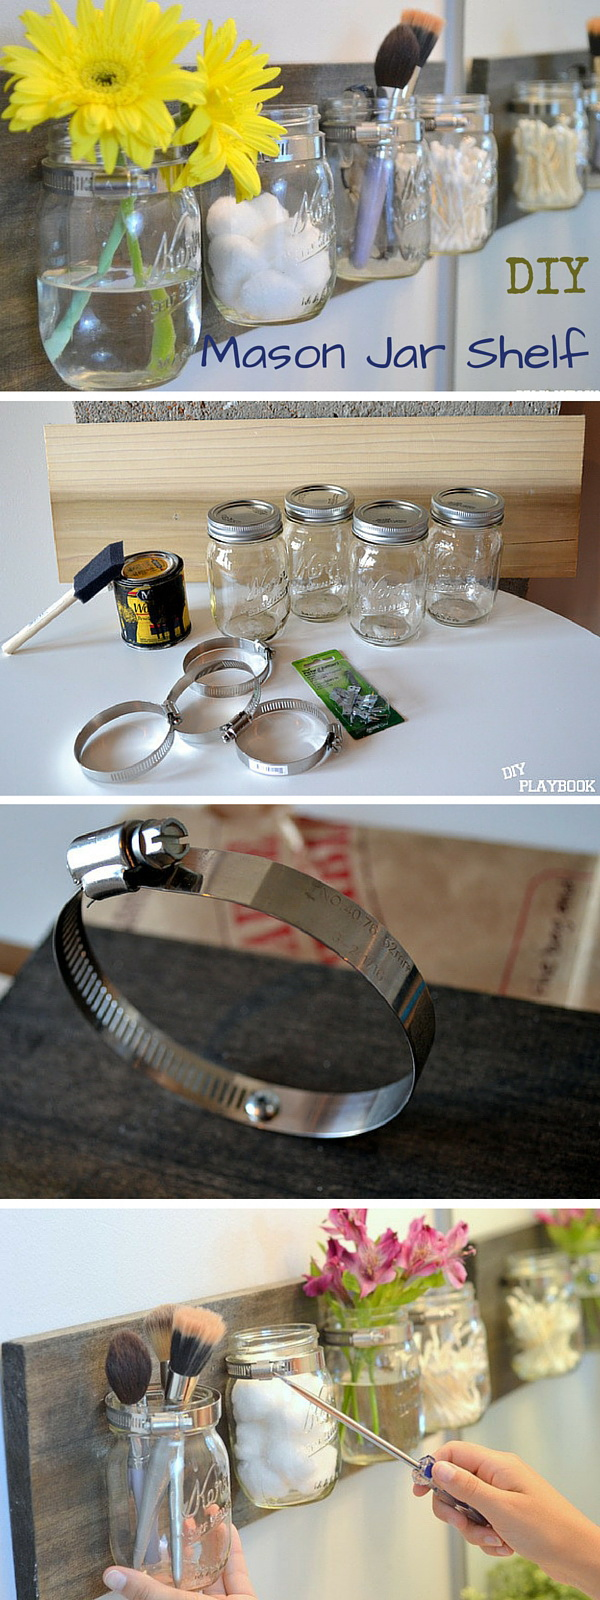 40 creative diy mason jar projects with tutorials for Projects to do with mason jars